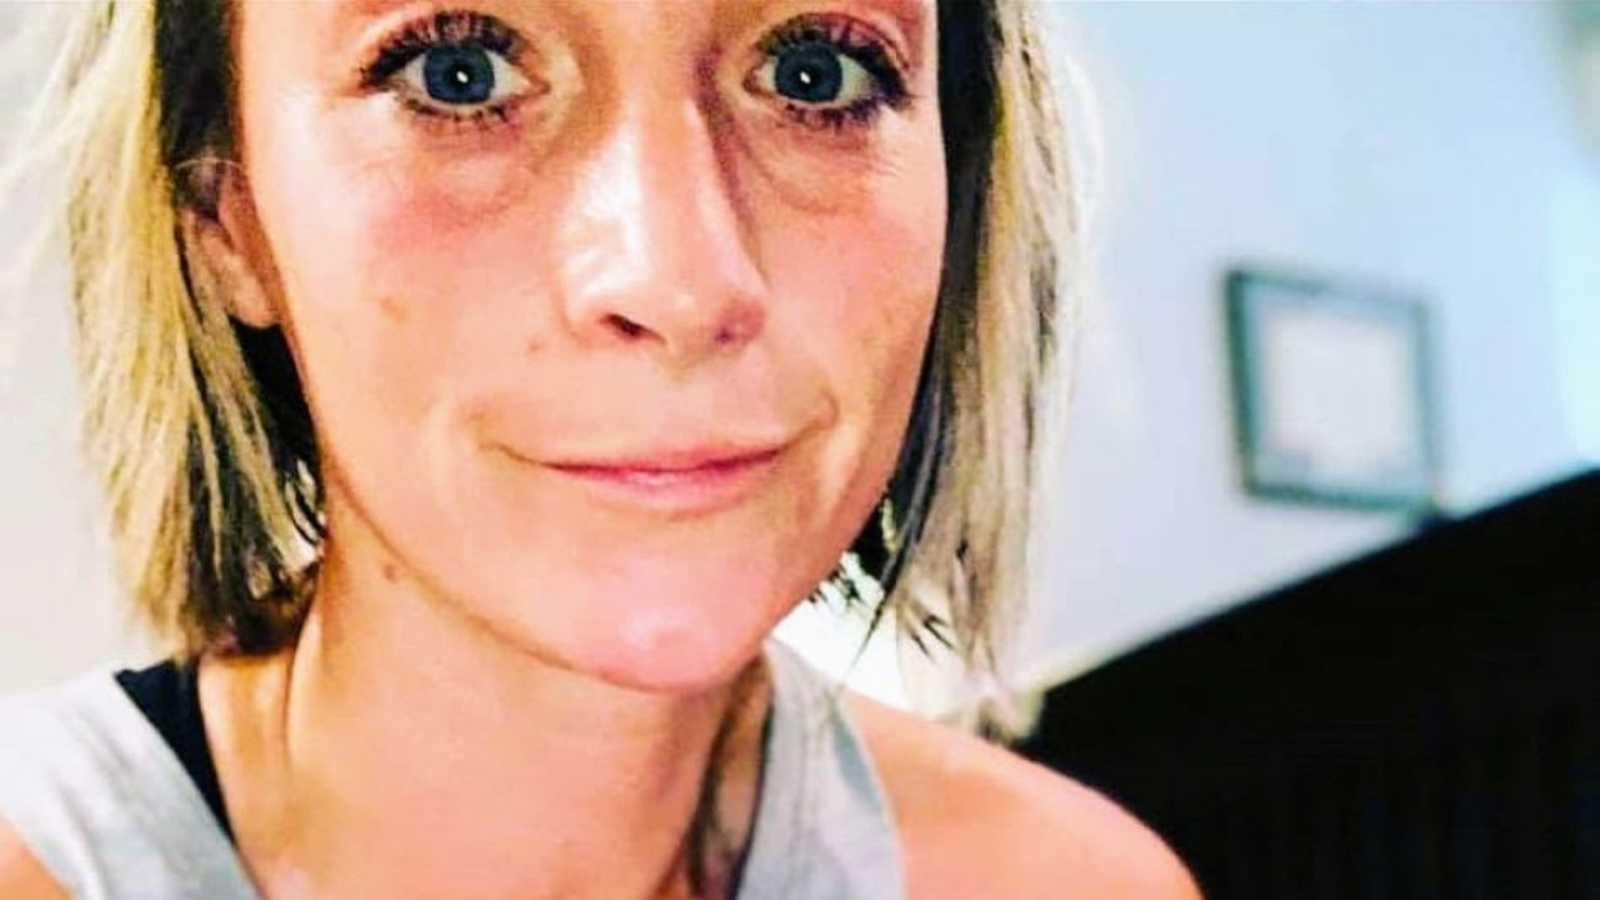 Mom of three takes selfie after going on three-mile run